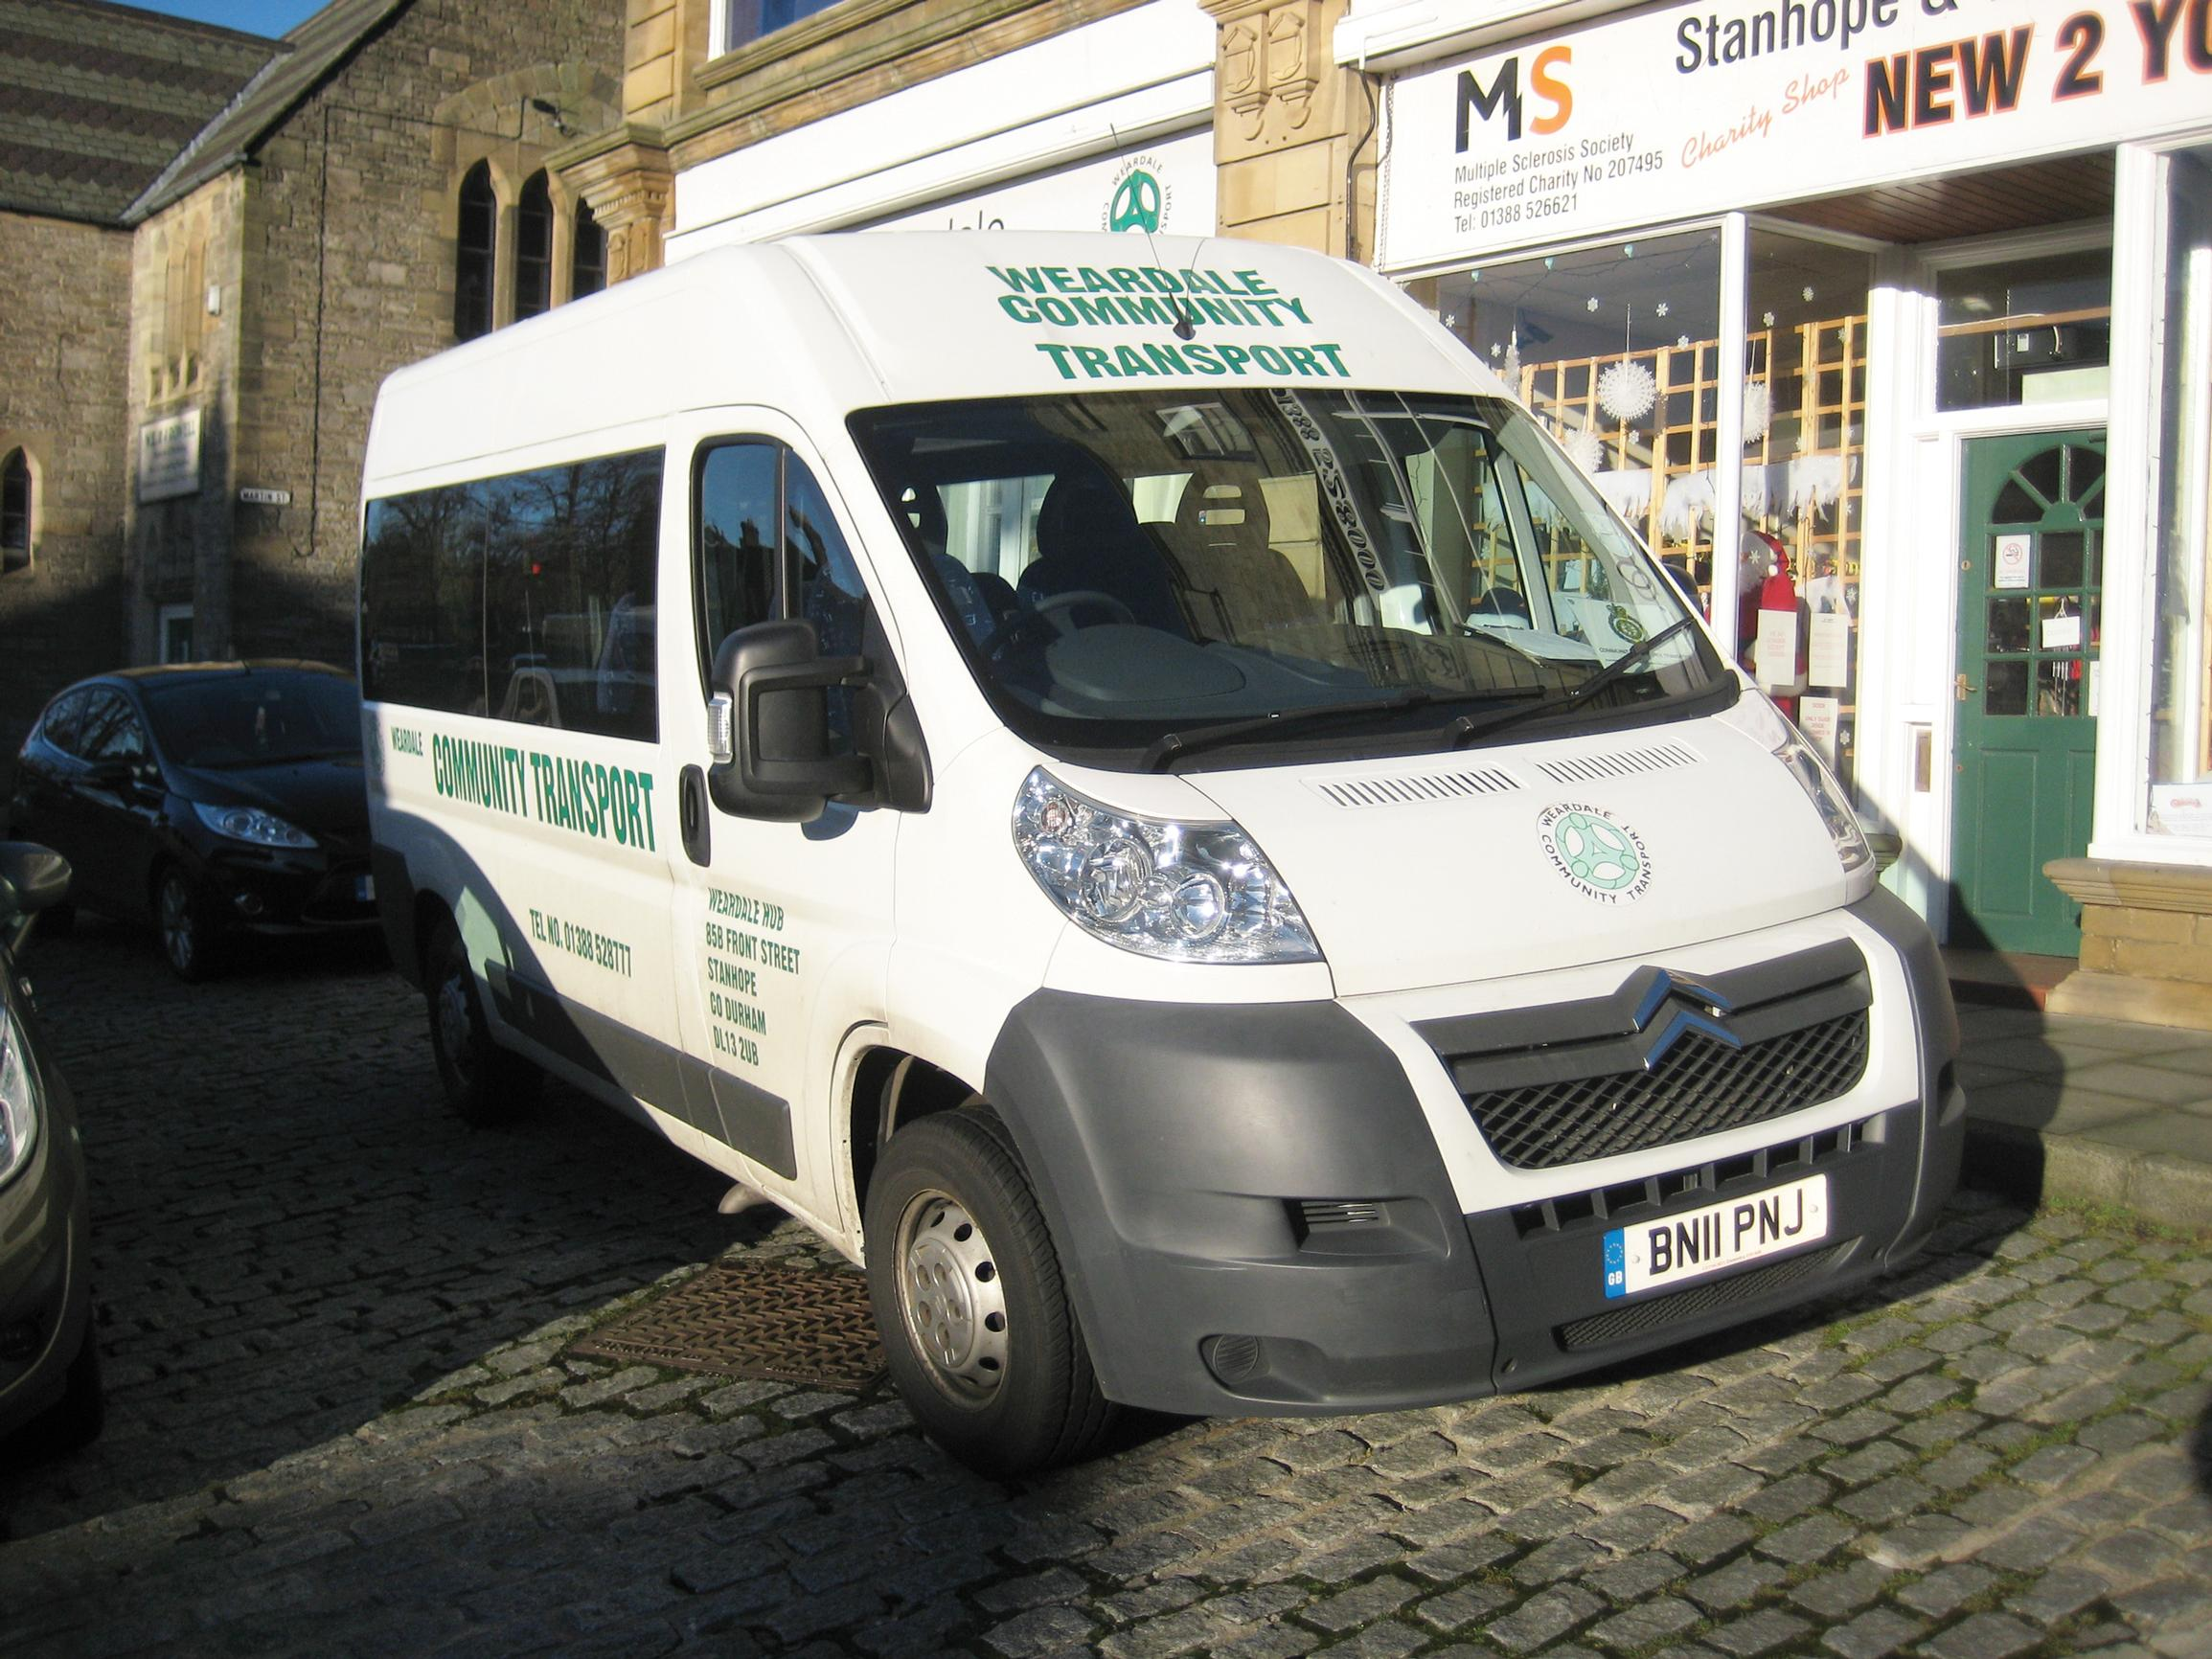 Authorities review community transport contracts after ruling